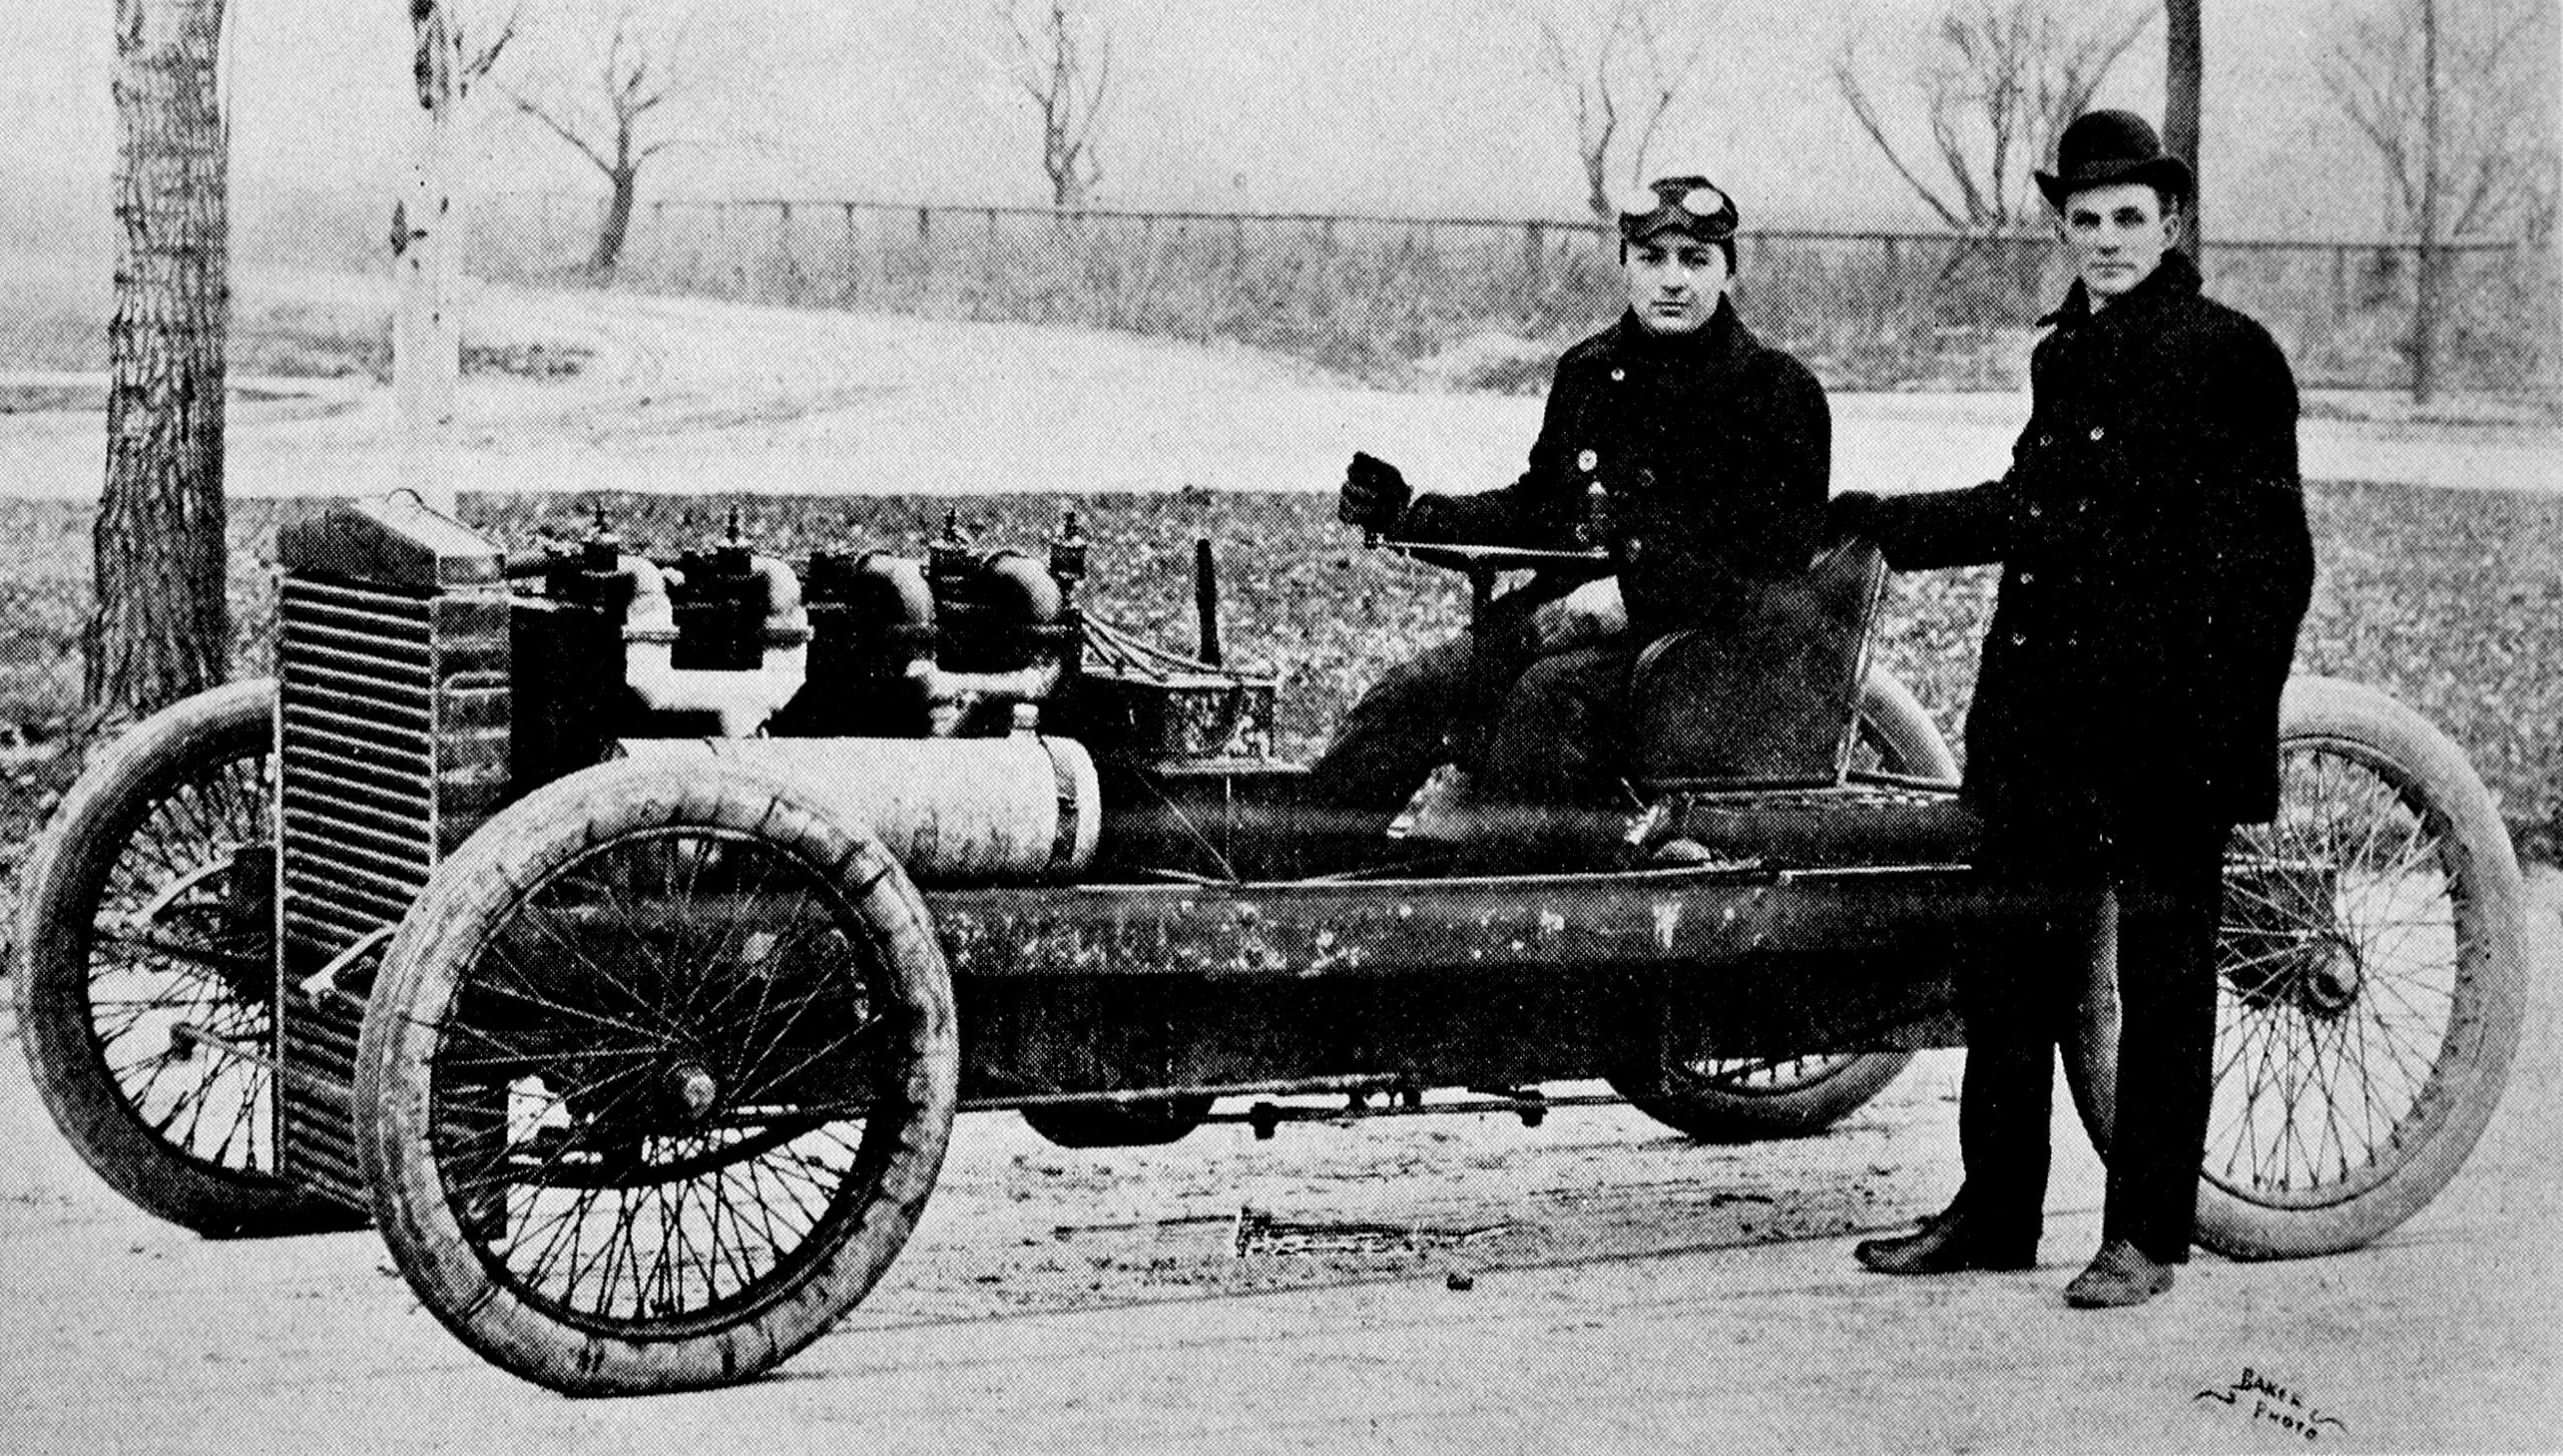 Henry_Ford_and_Barney_Oldfield_with_Old_999,_1902